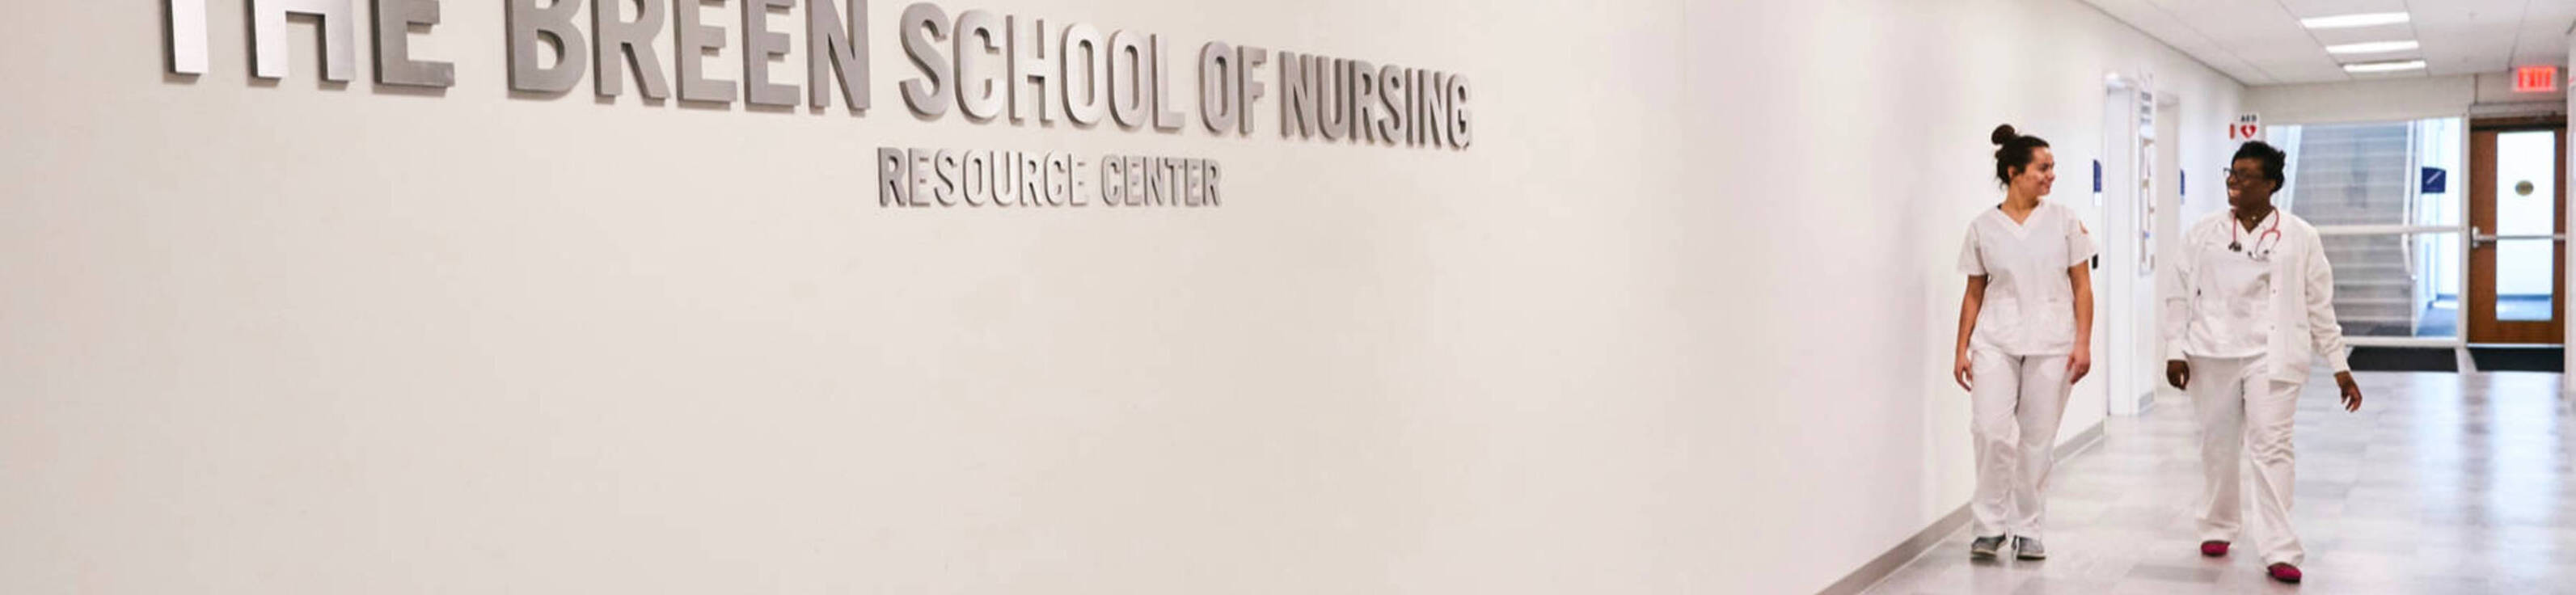 Nursing students at ursuline college